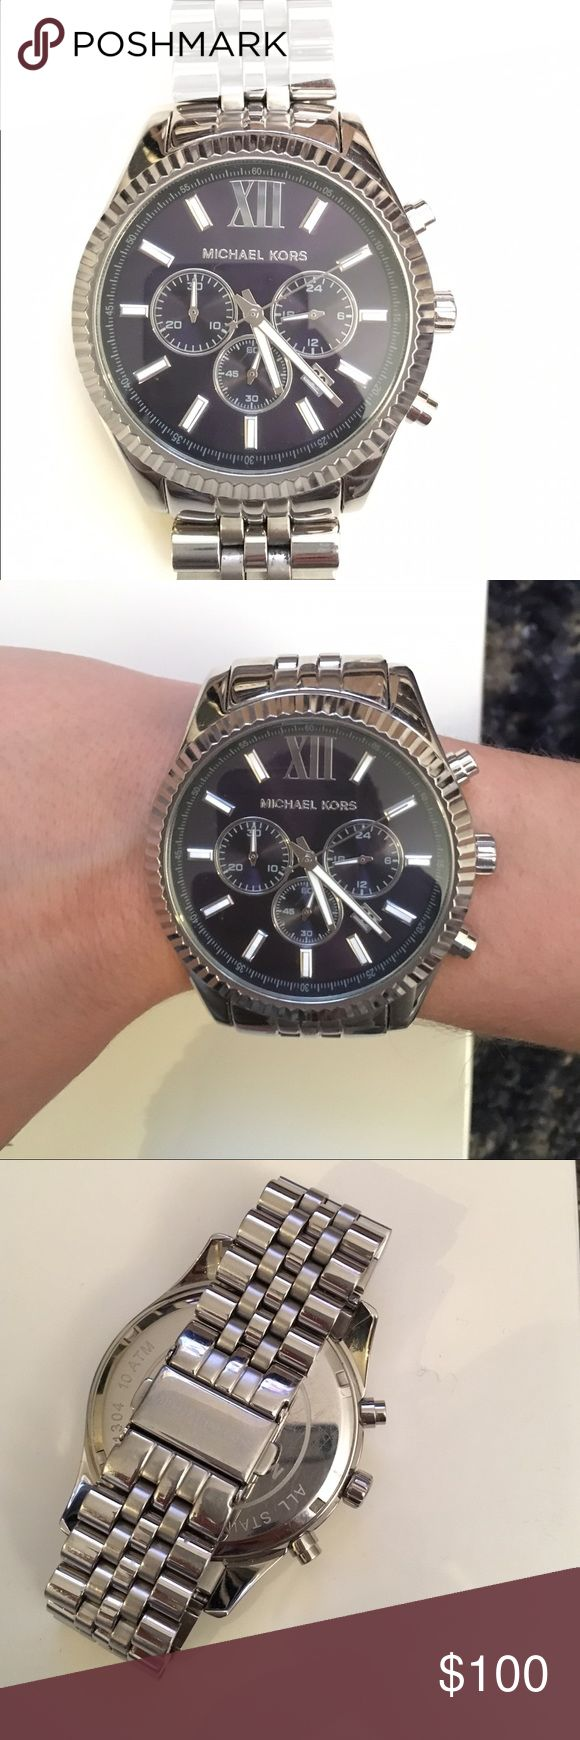 Michael Kors Silver Tone Navy Face Watch Michael Kors Silver Tone Navy Face Watch. In excellent condition, rarely worn. Custom sized to a small wrist, can be readjusted with added links and battery replacement in any Michael Kors store locations. Michael Kors Accessories Watches